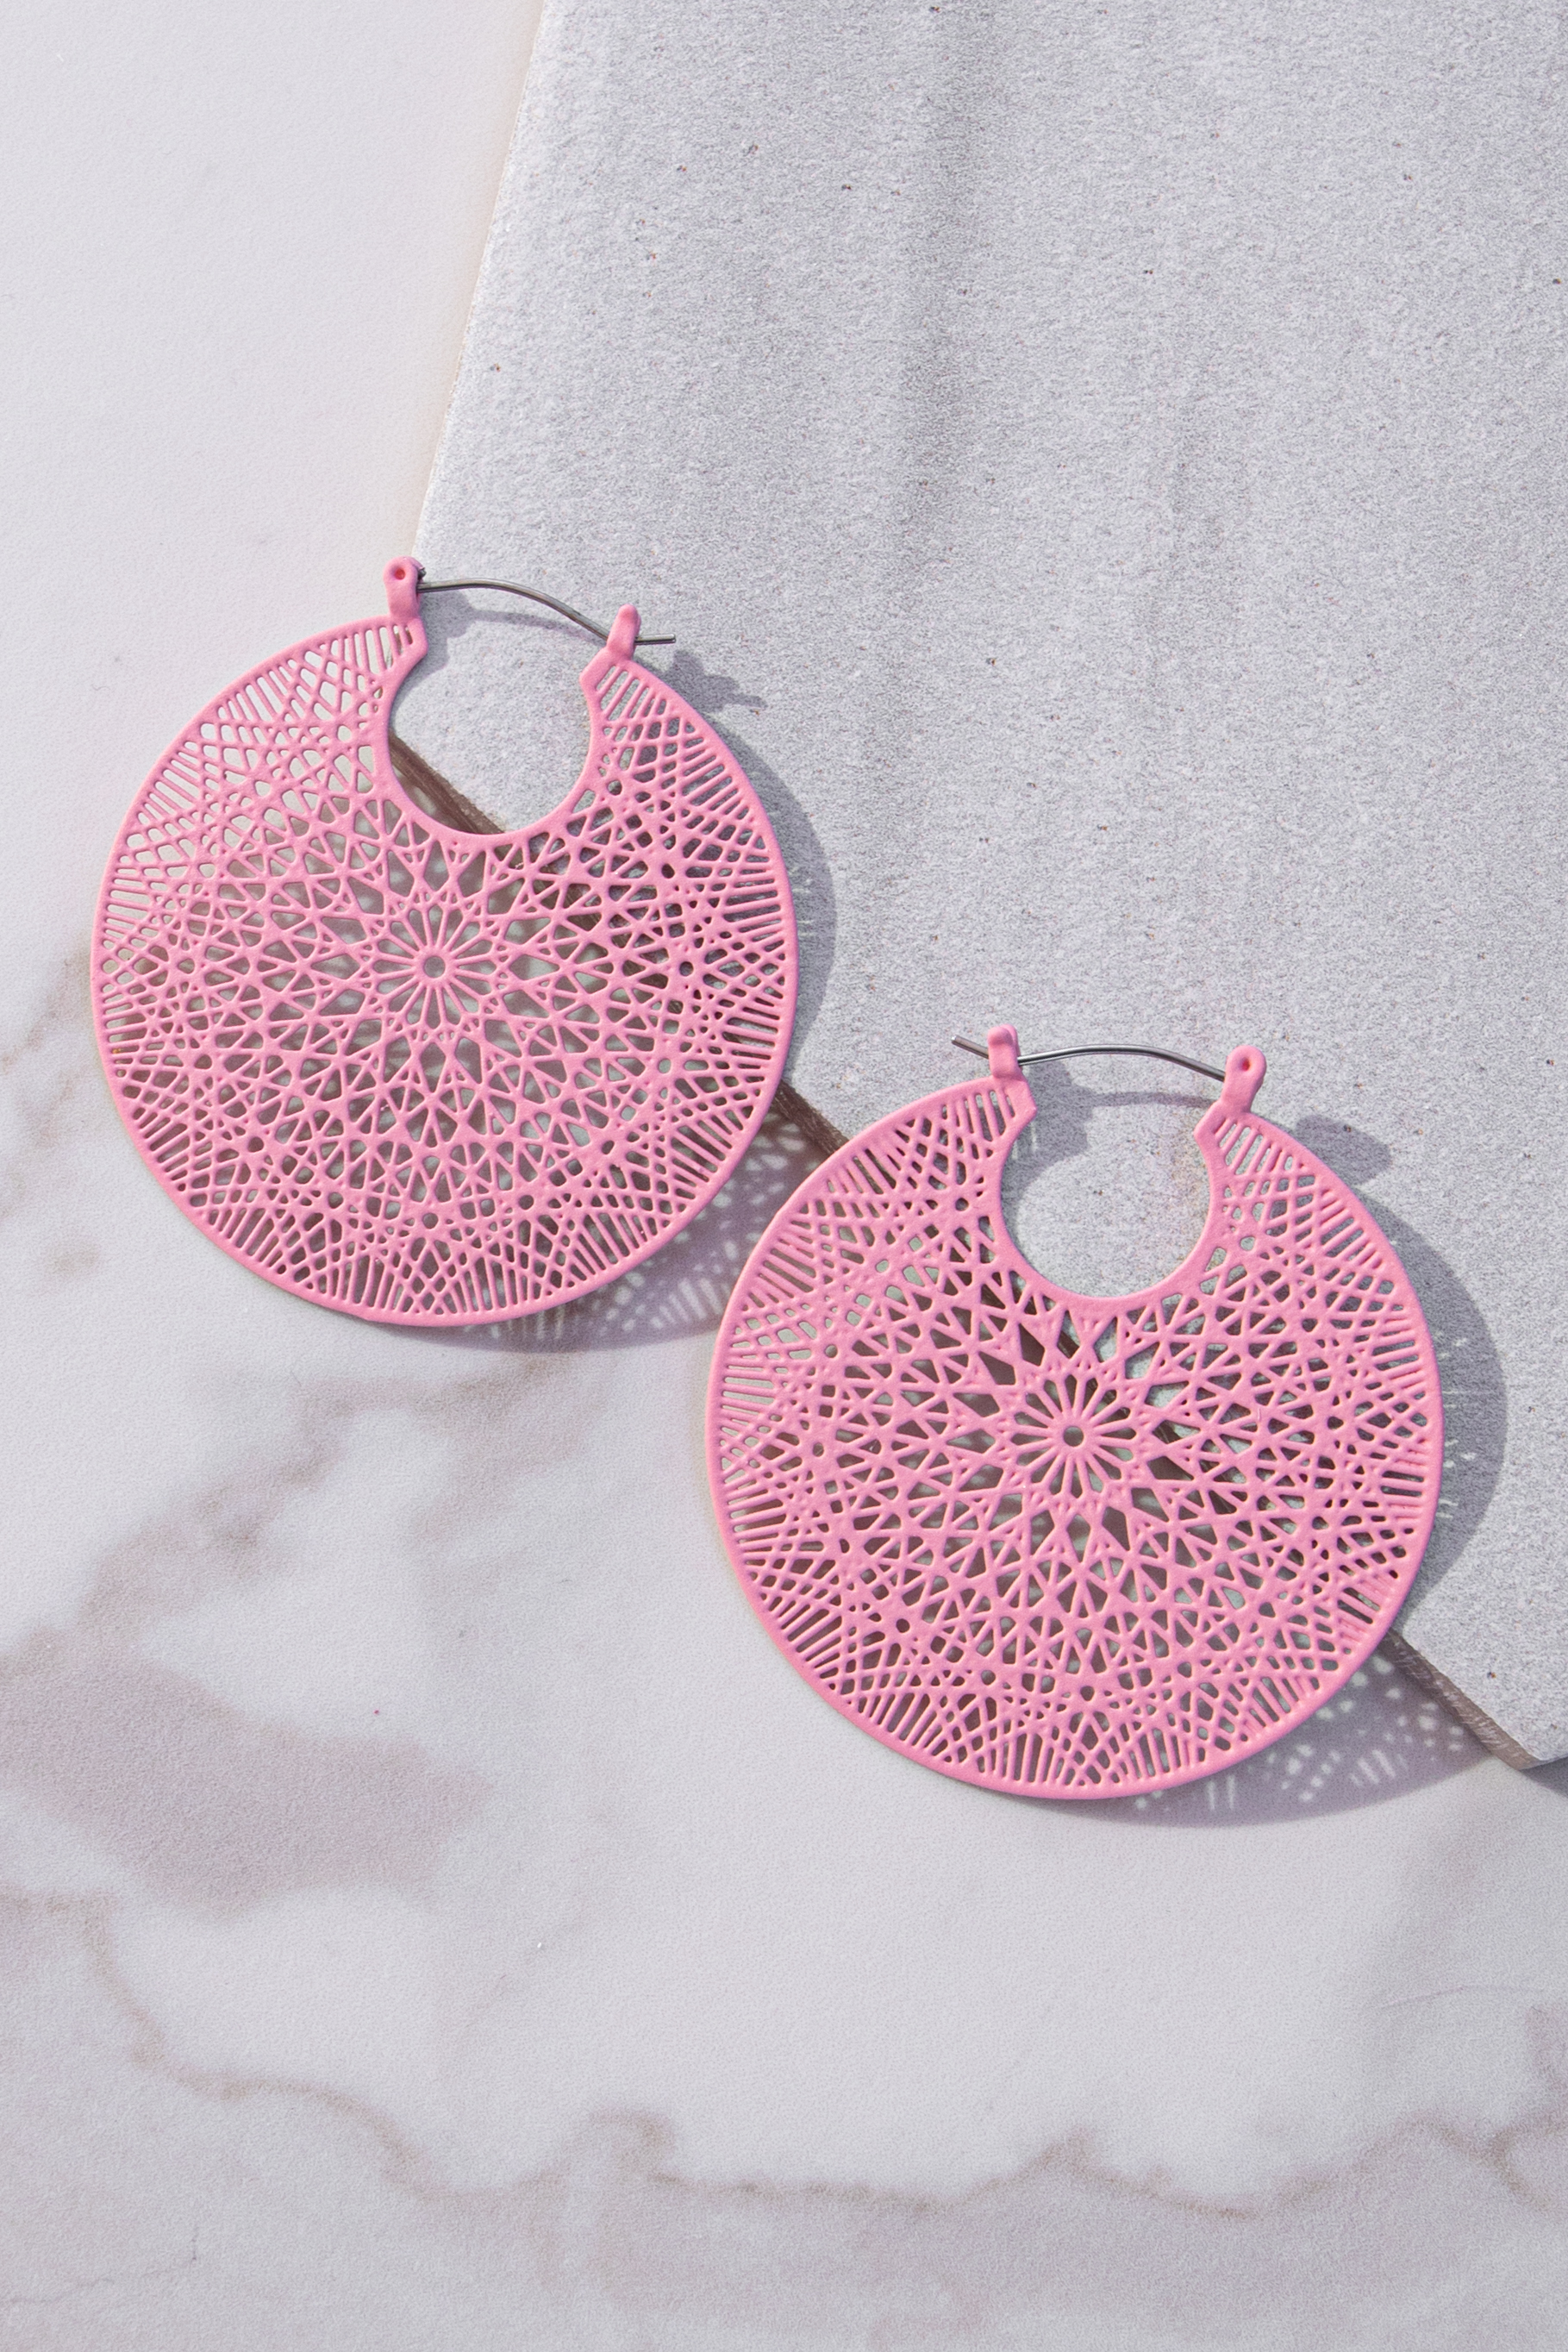 Dusty Blush Filigree Circle Earrings with Bar Clasp Closure